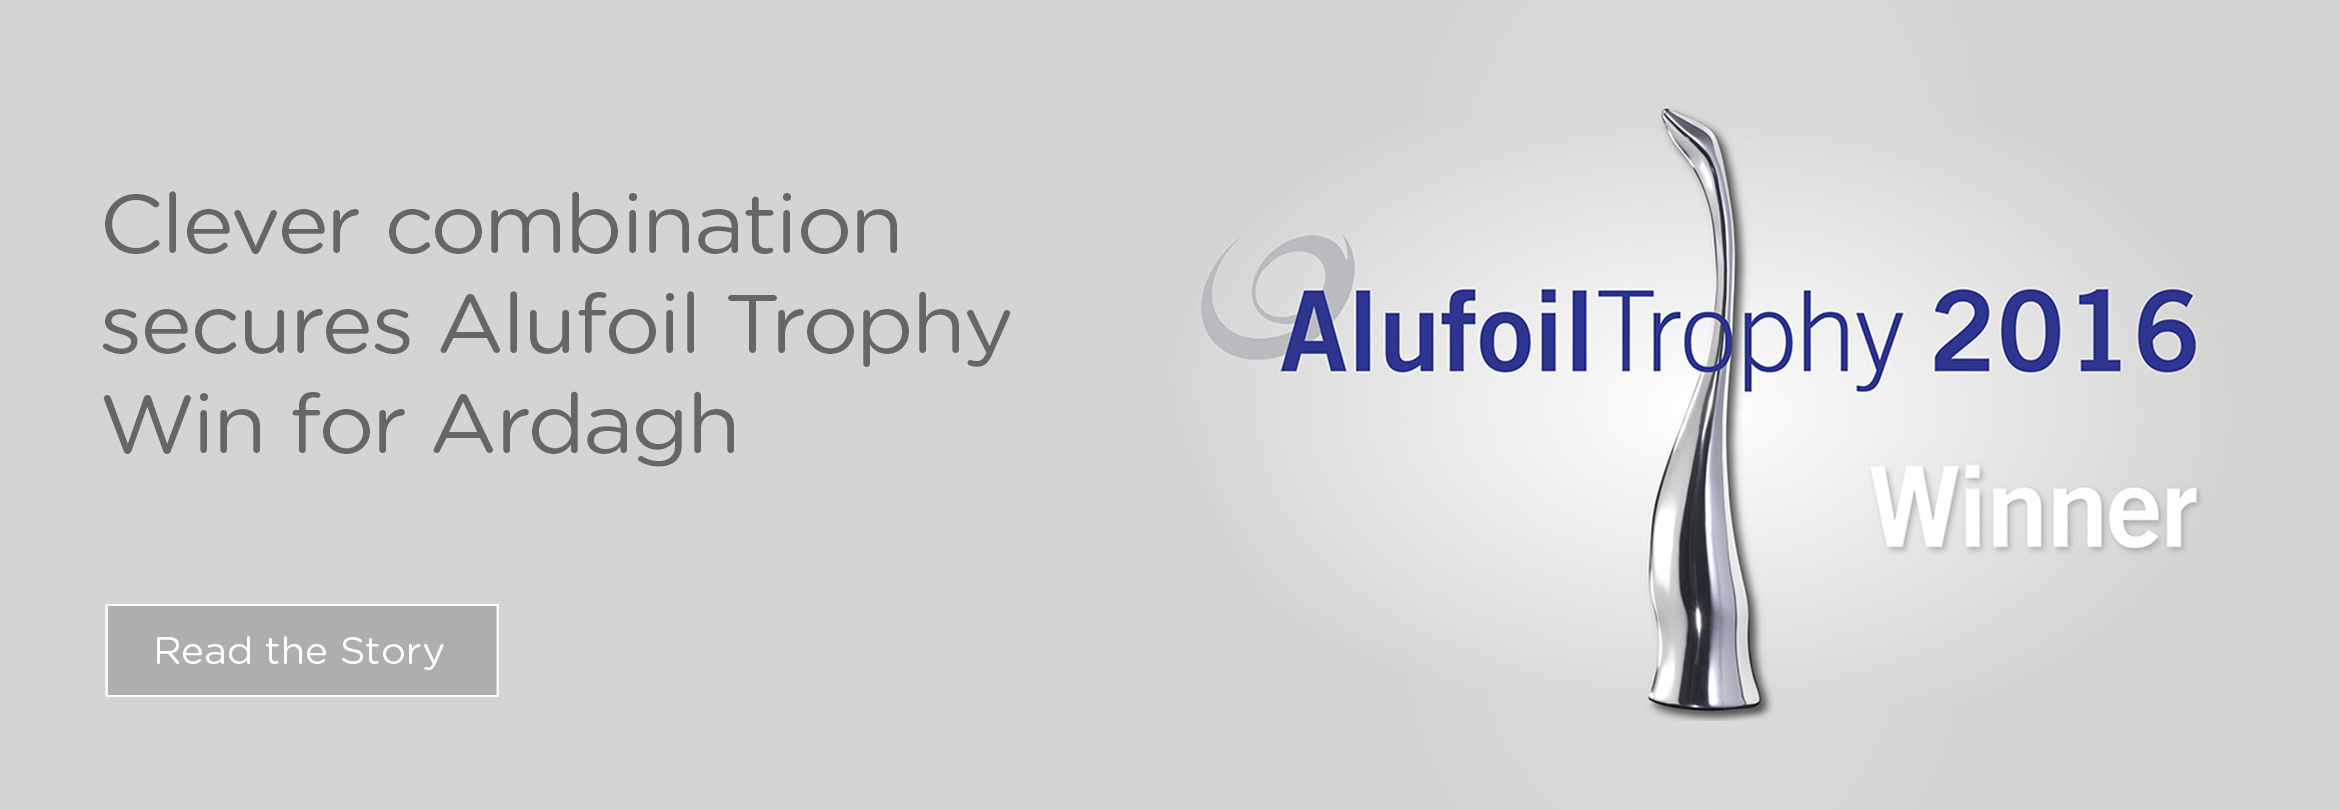 Clever combination secures Alufoil